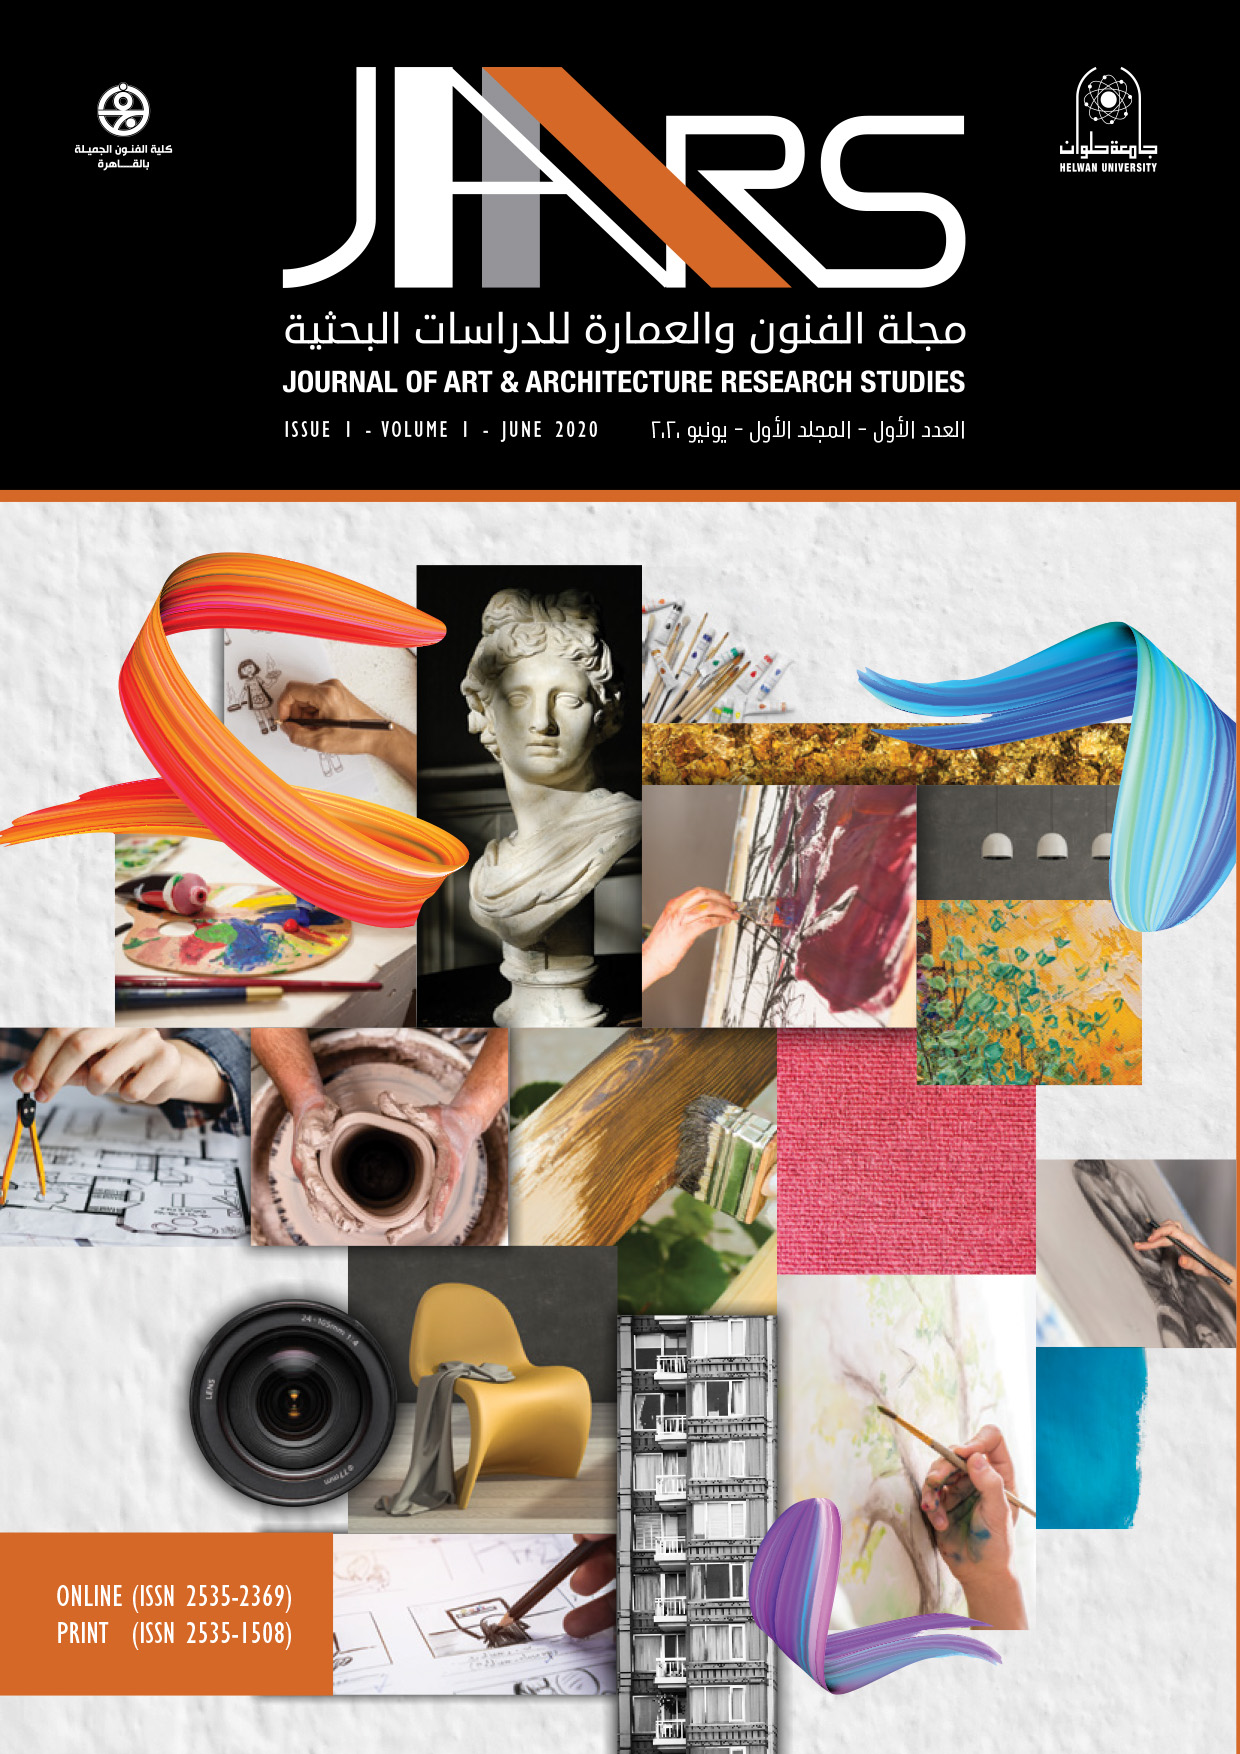 Journal of Arts & Architecture Research Studies